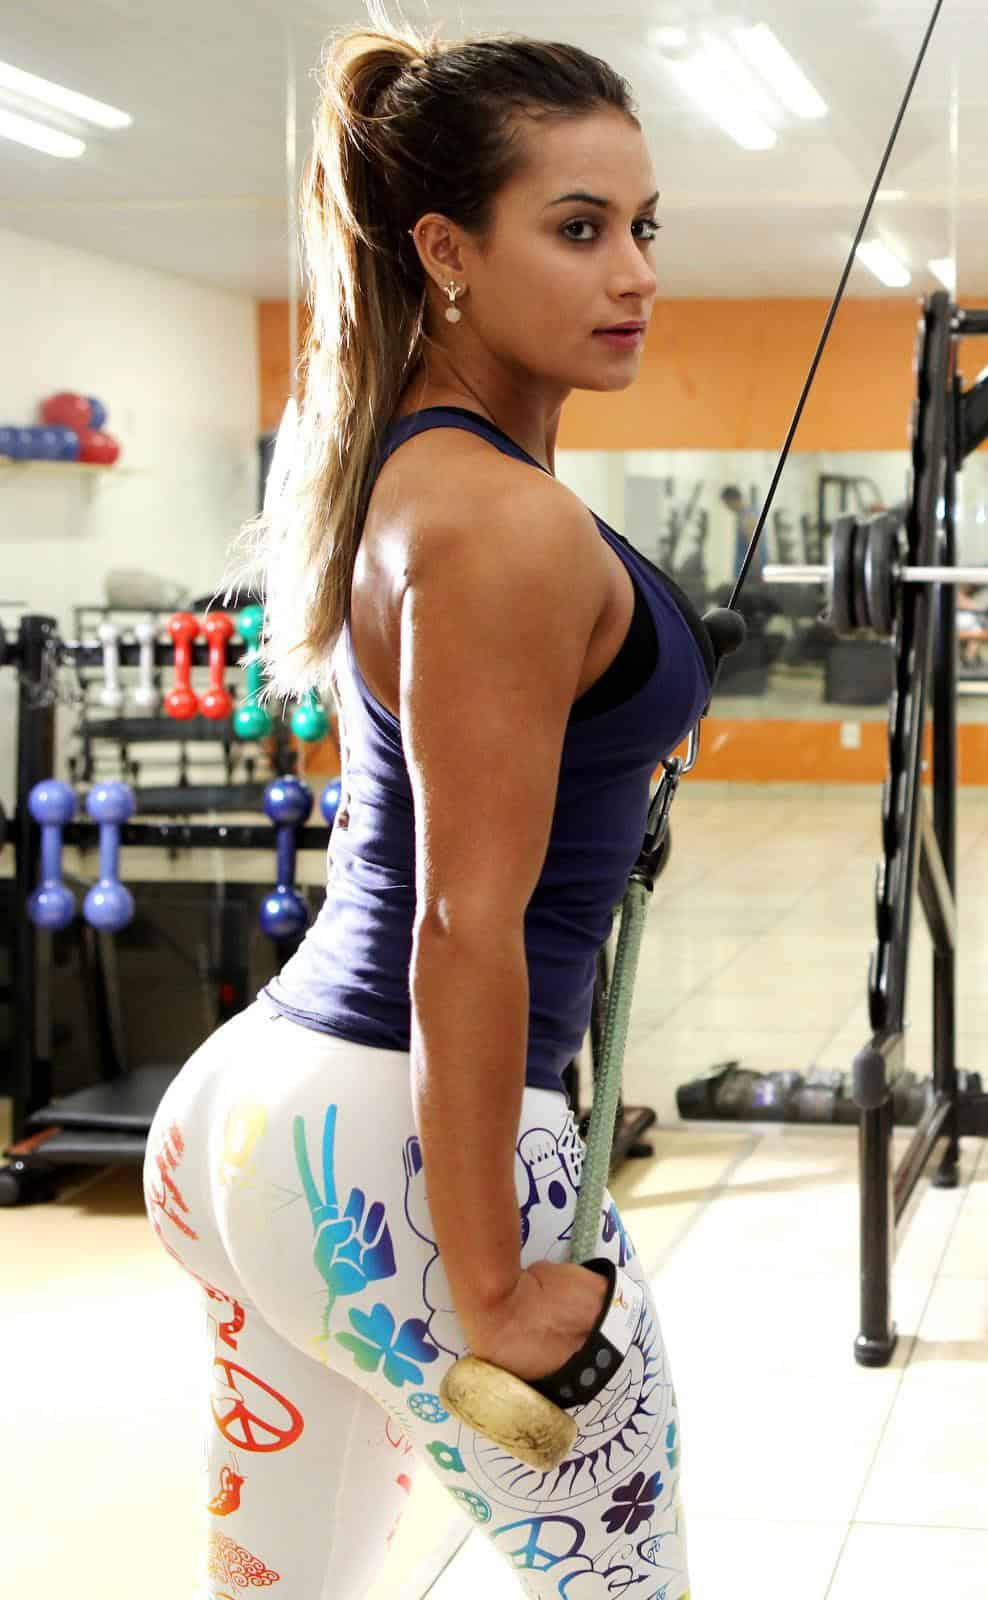 Warm Nude Girls With Big Booties Pictures